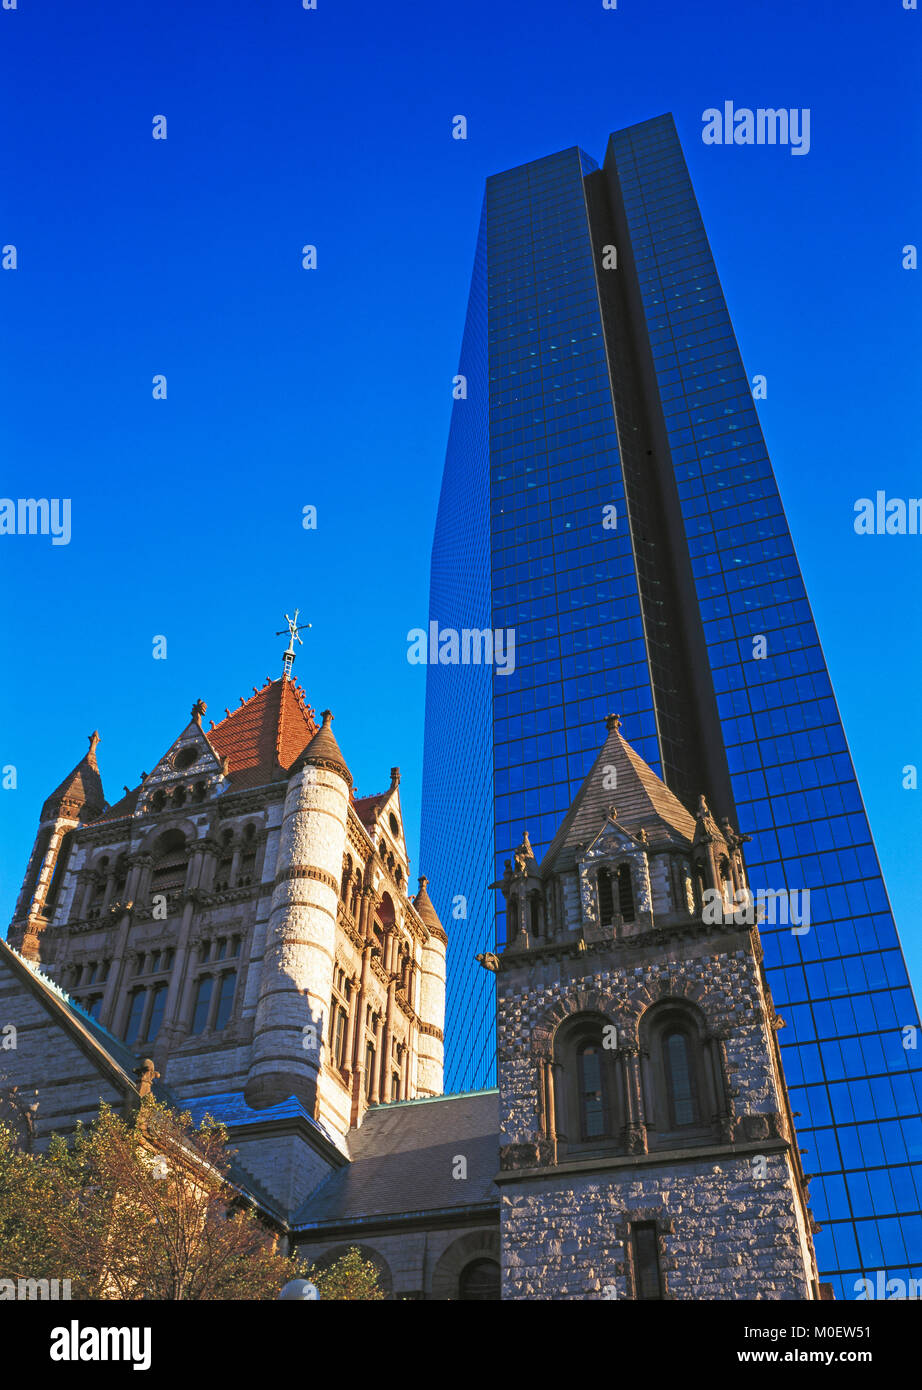 La Trinity Church y la torre Hancock, Boston, Massachusetts, EE.UU. Imagen De Stock